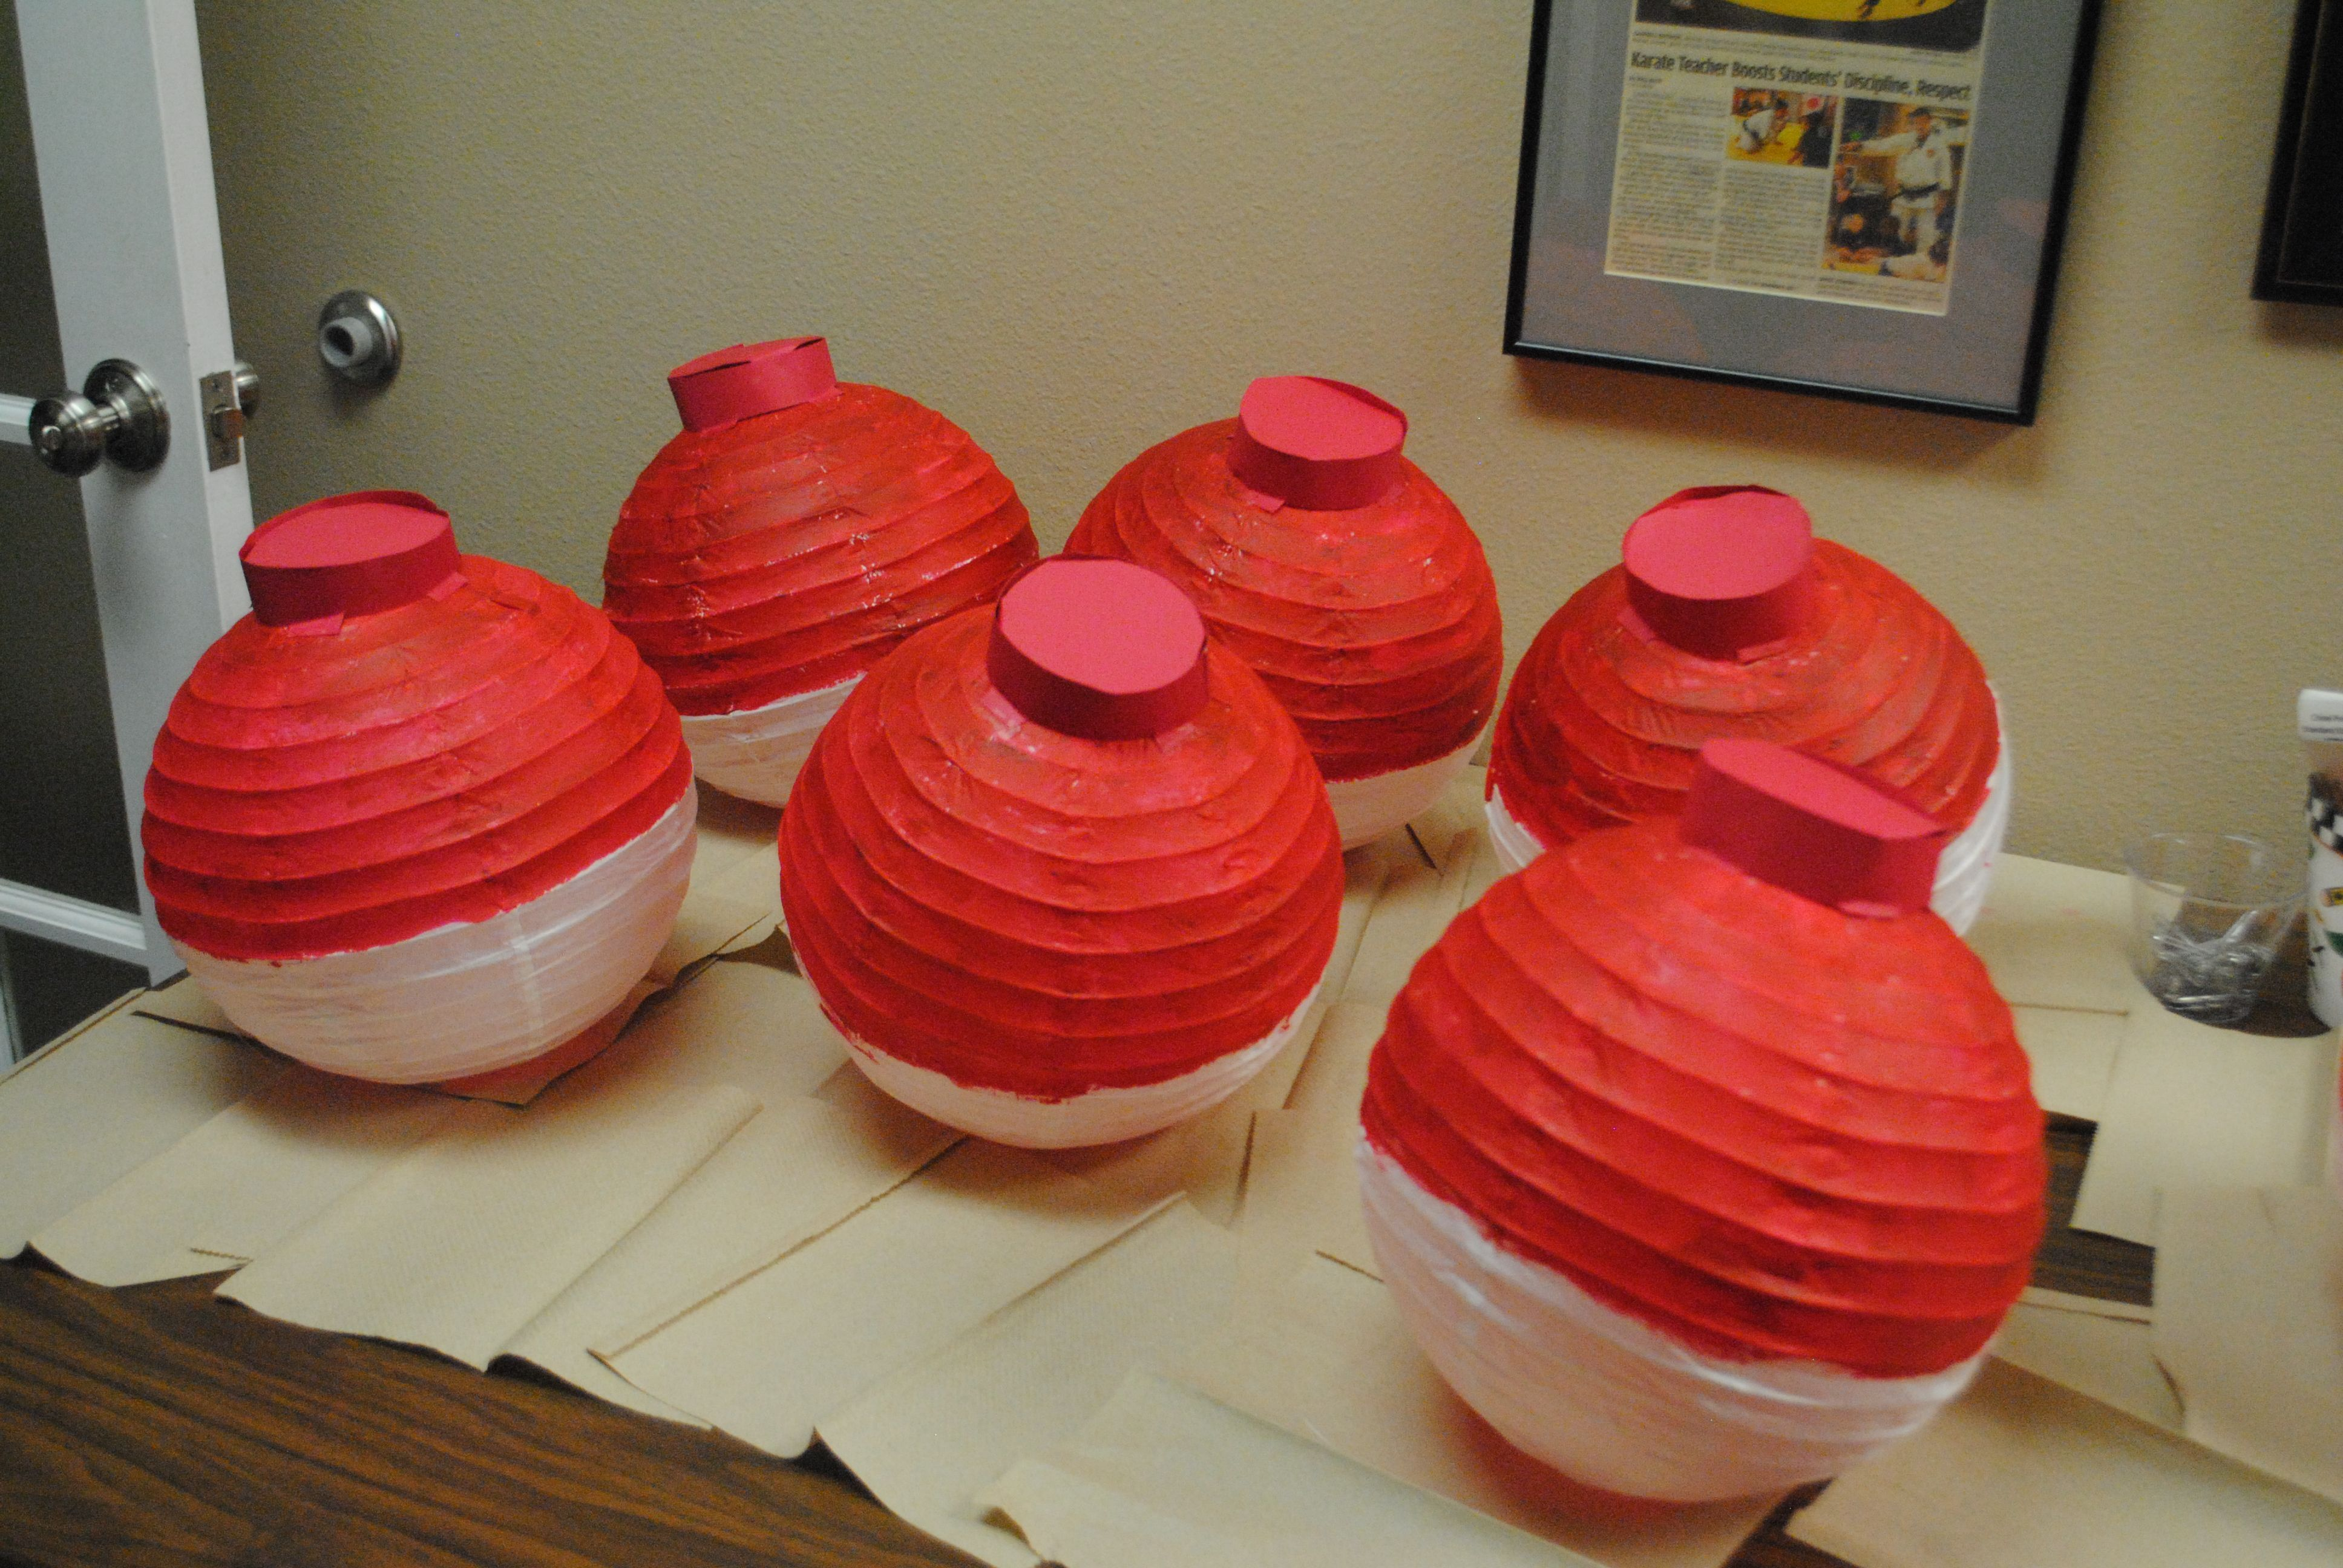 Fishing Bobber Decorations Painted Paper Lanterns With